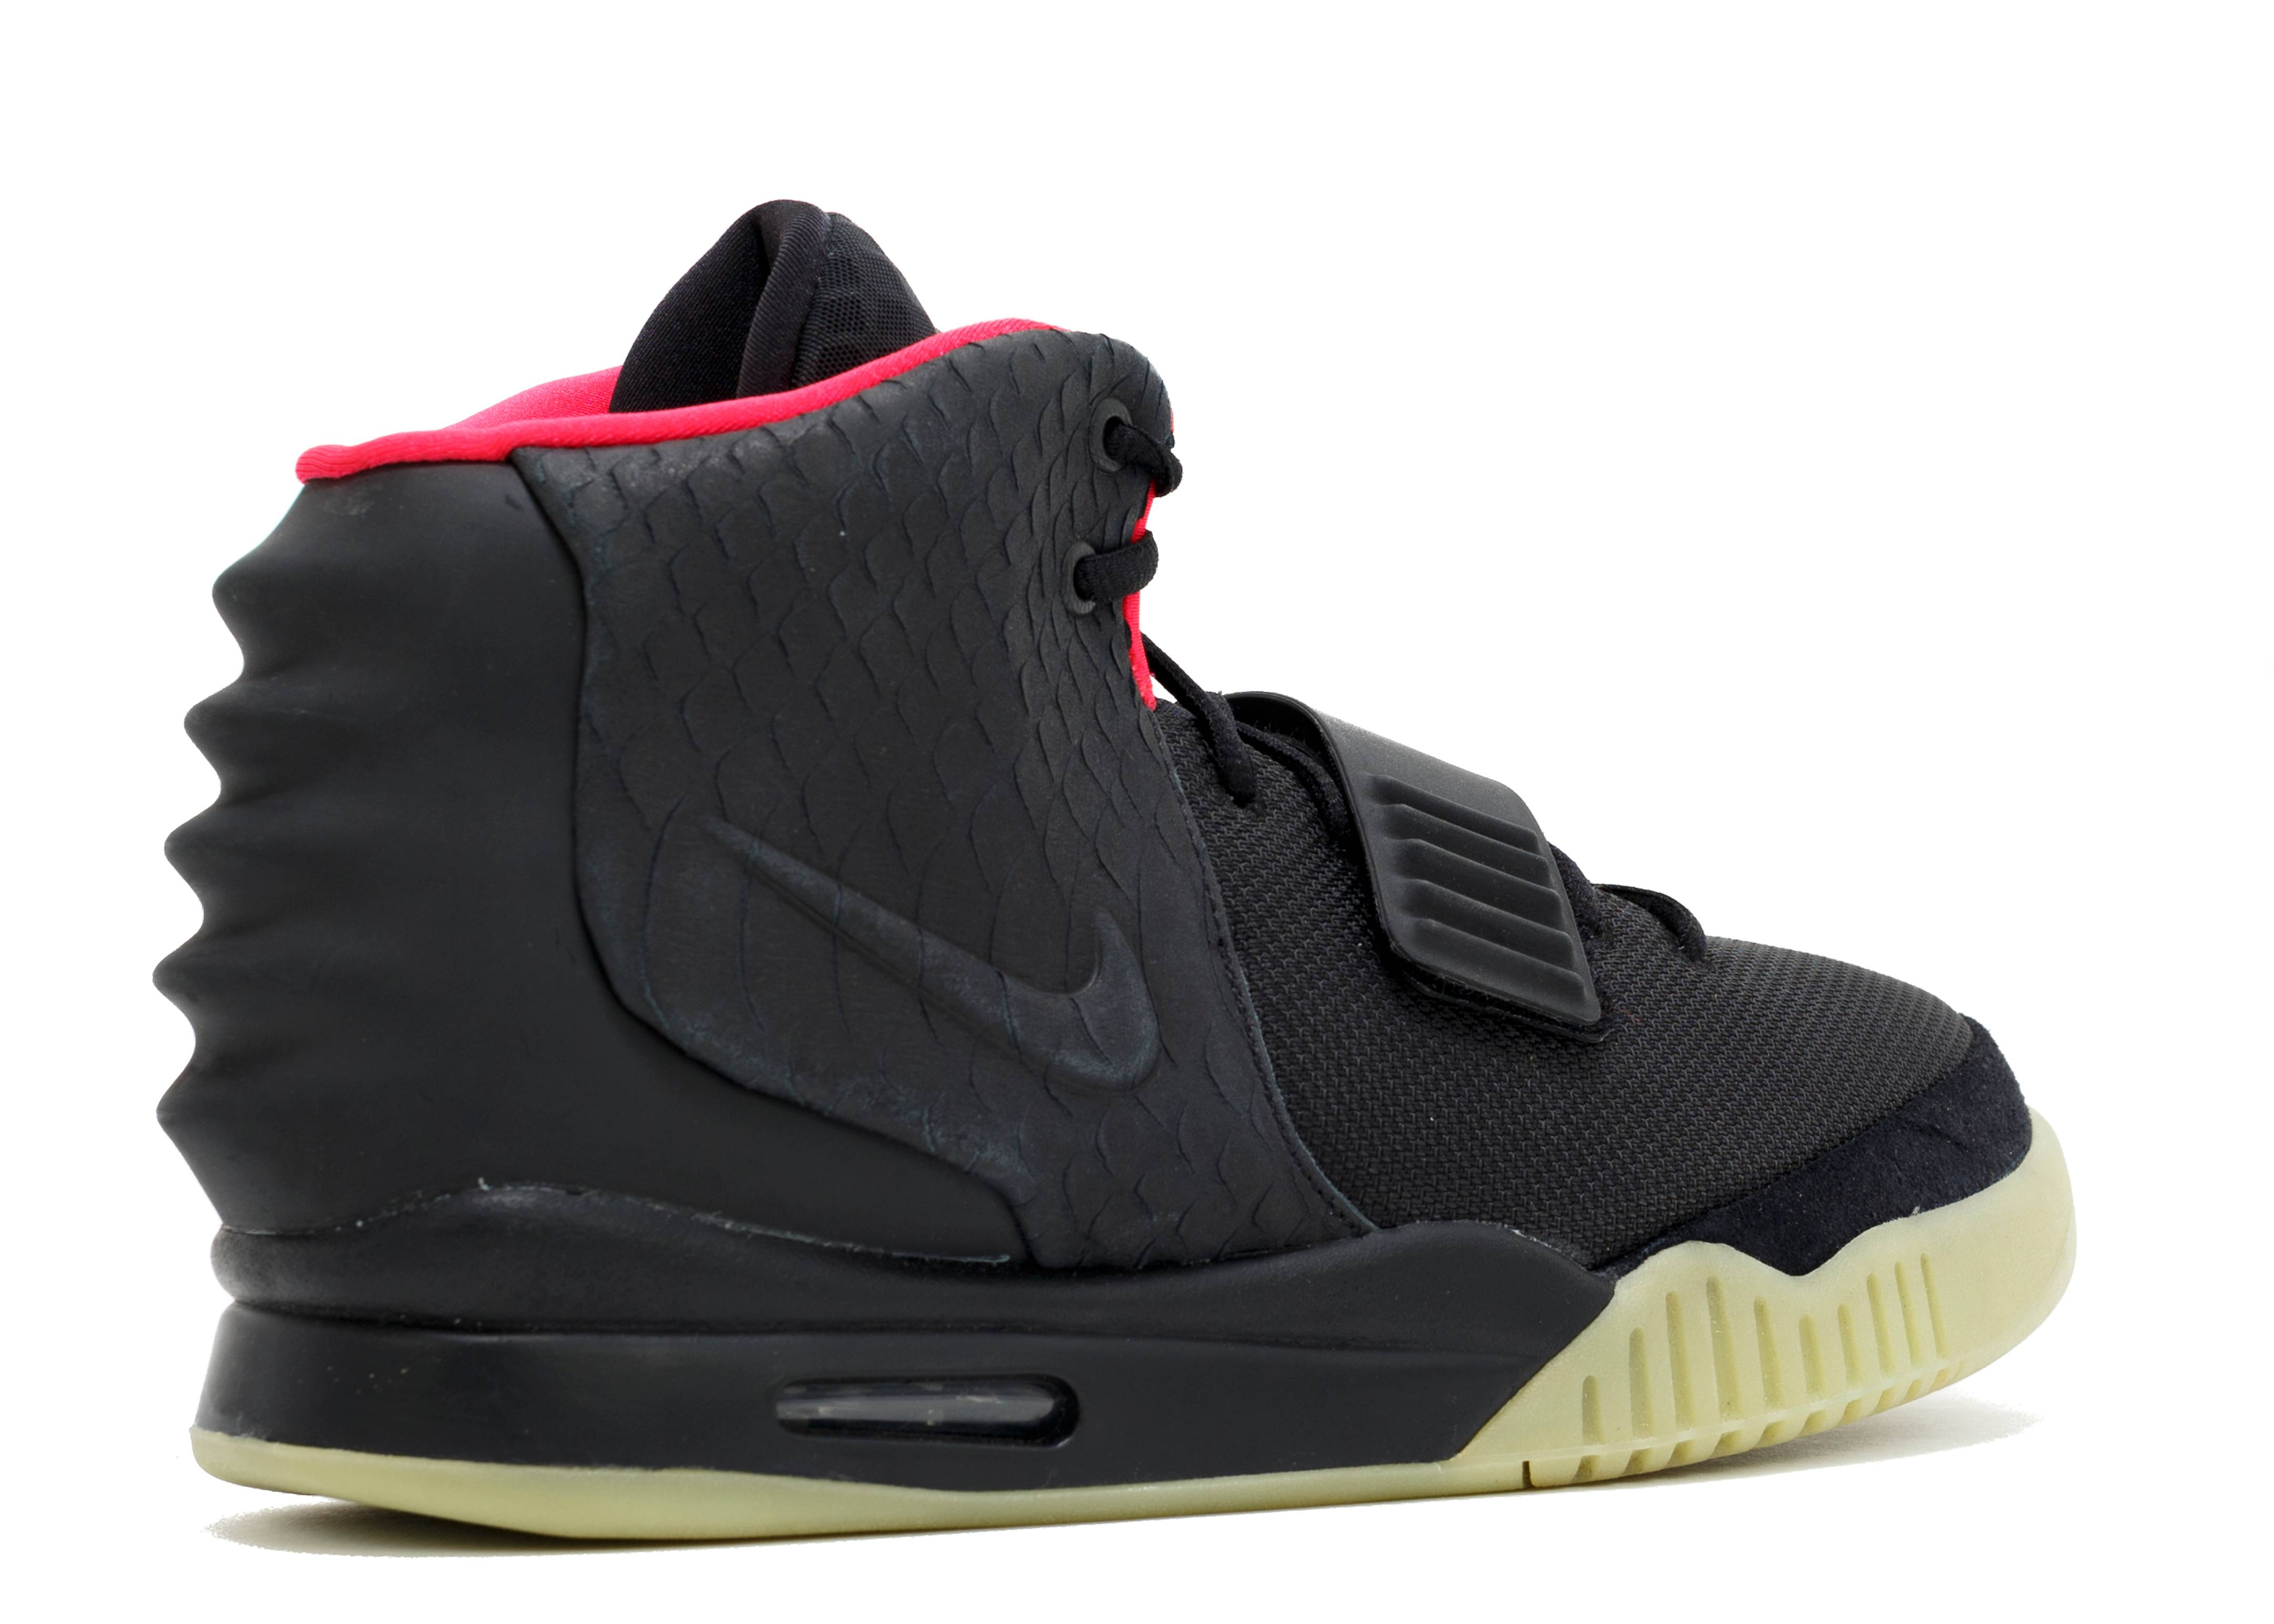 Yeezy 2 shoes red